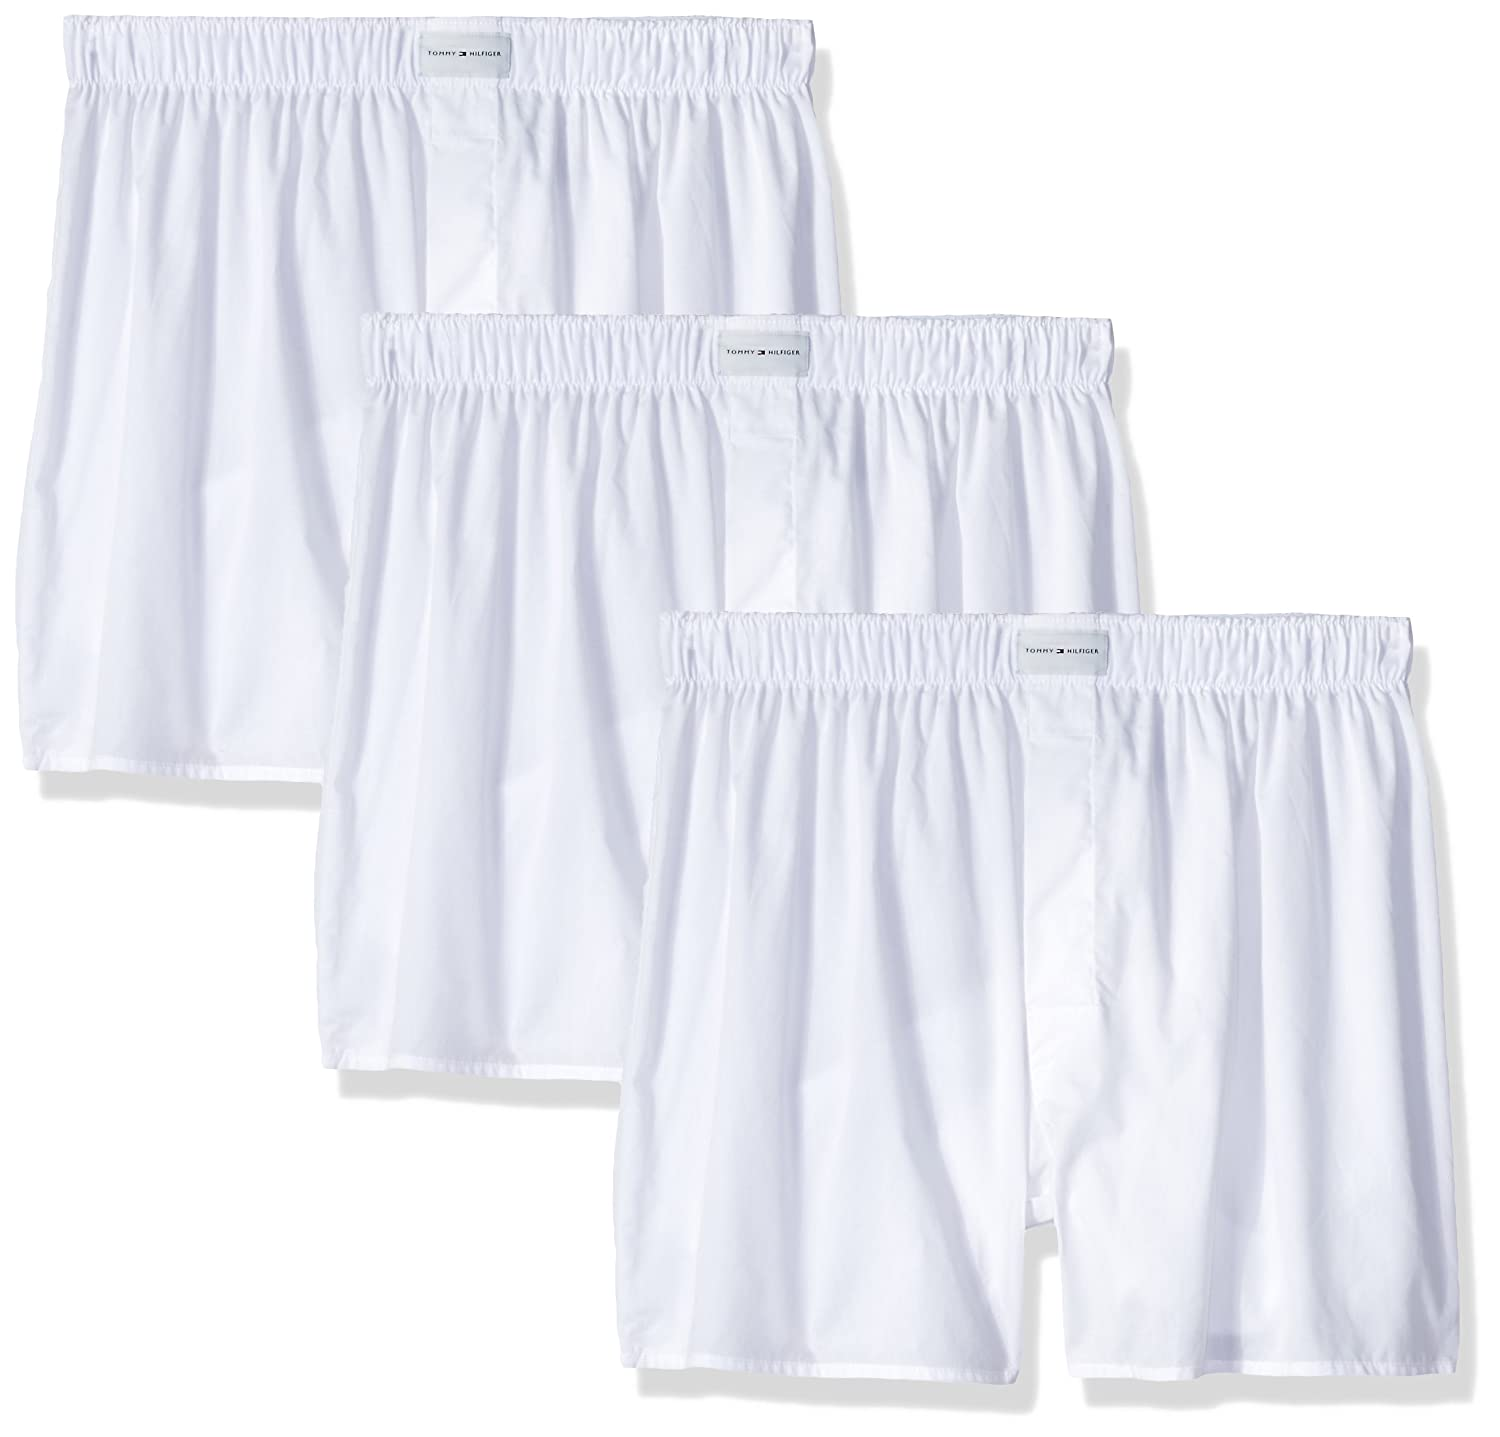 Tommy Hilfiger mens standard Underwear 3 Pack Cotton Classics Woven  09TV063